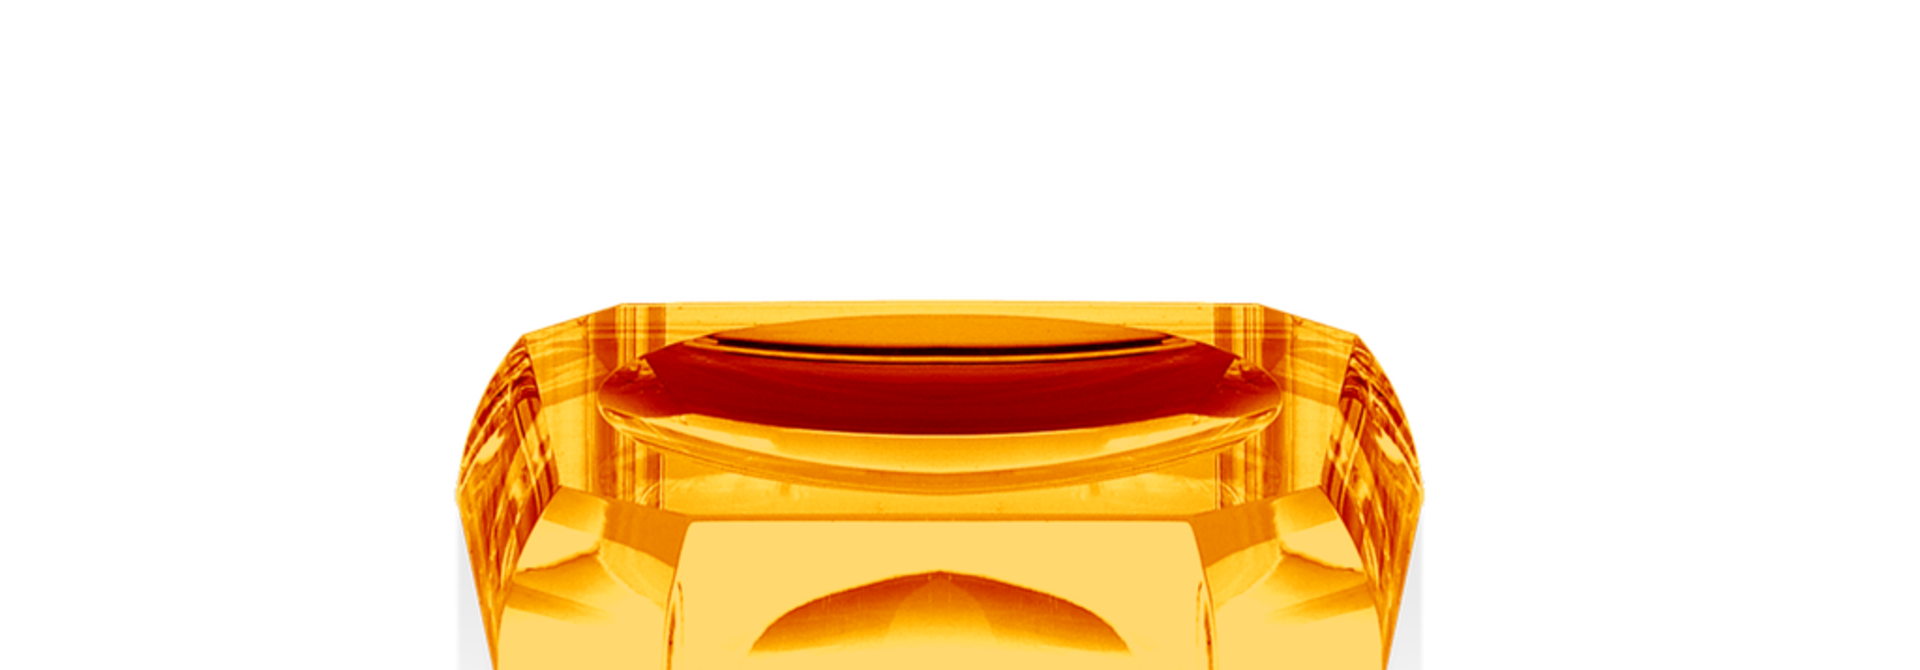 DECOR WALTHER - Amber Crystal Soap Dish